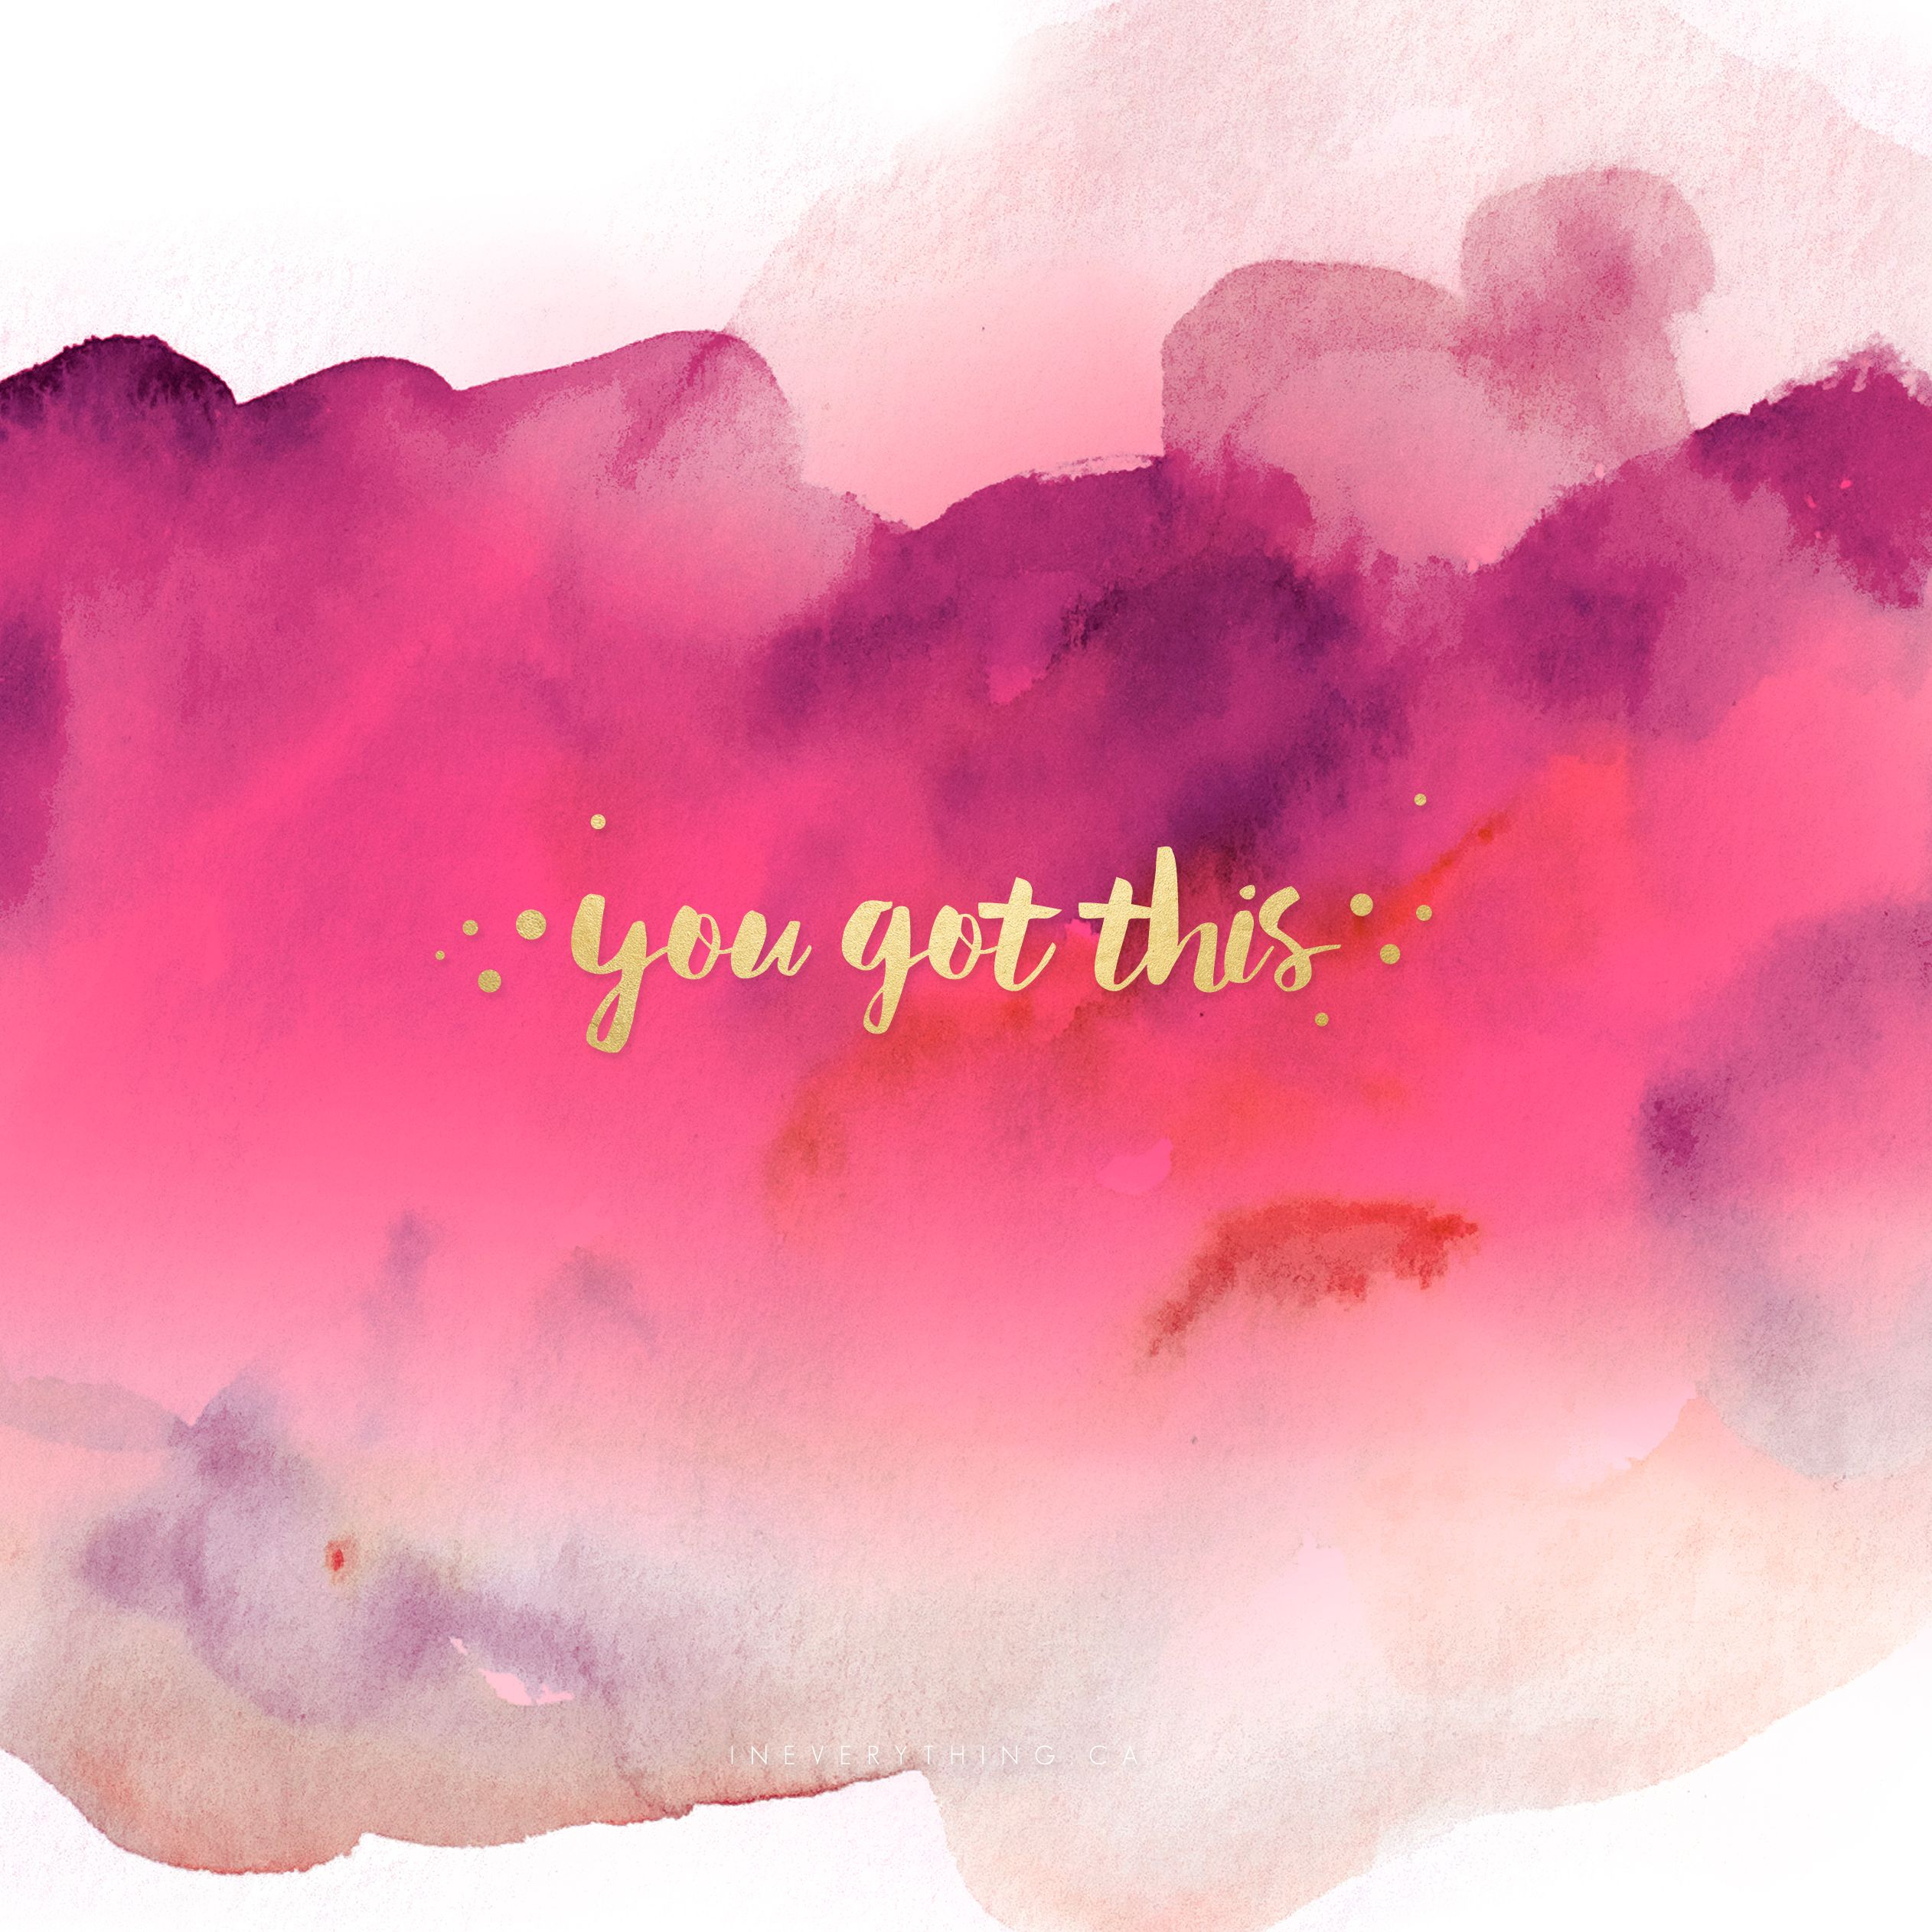 you got this printable quotes for achieving your goals you got this printable quotes for achieving your goals quotes about believing